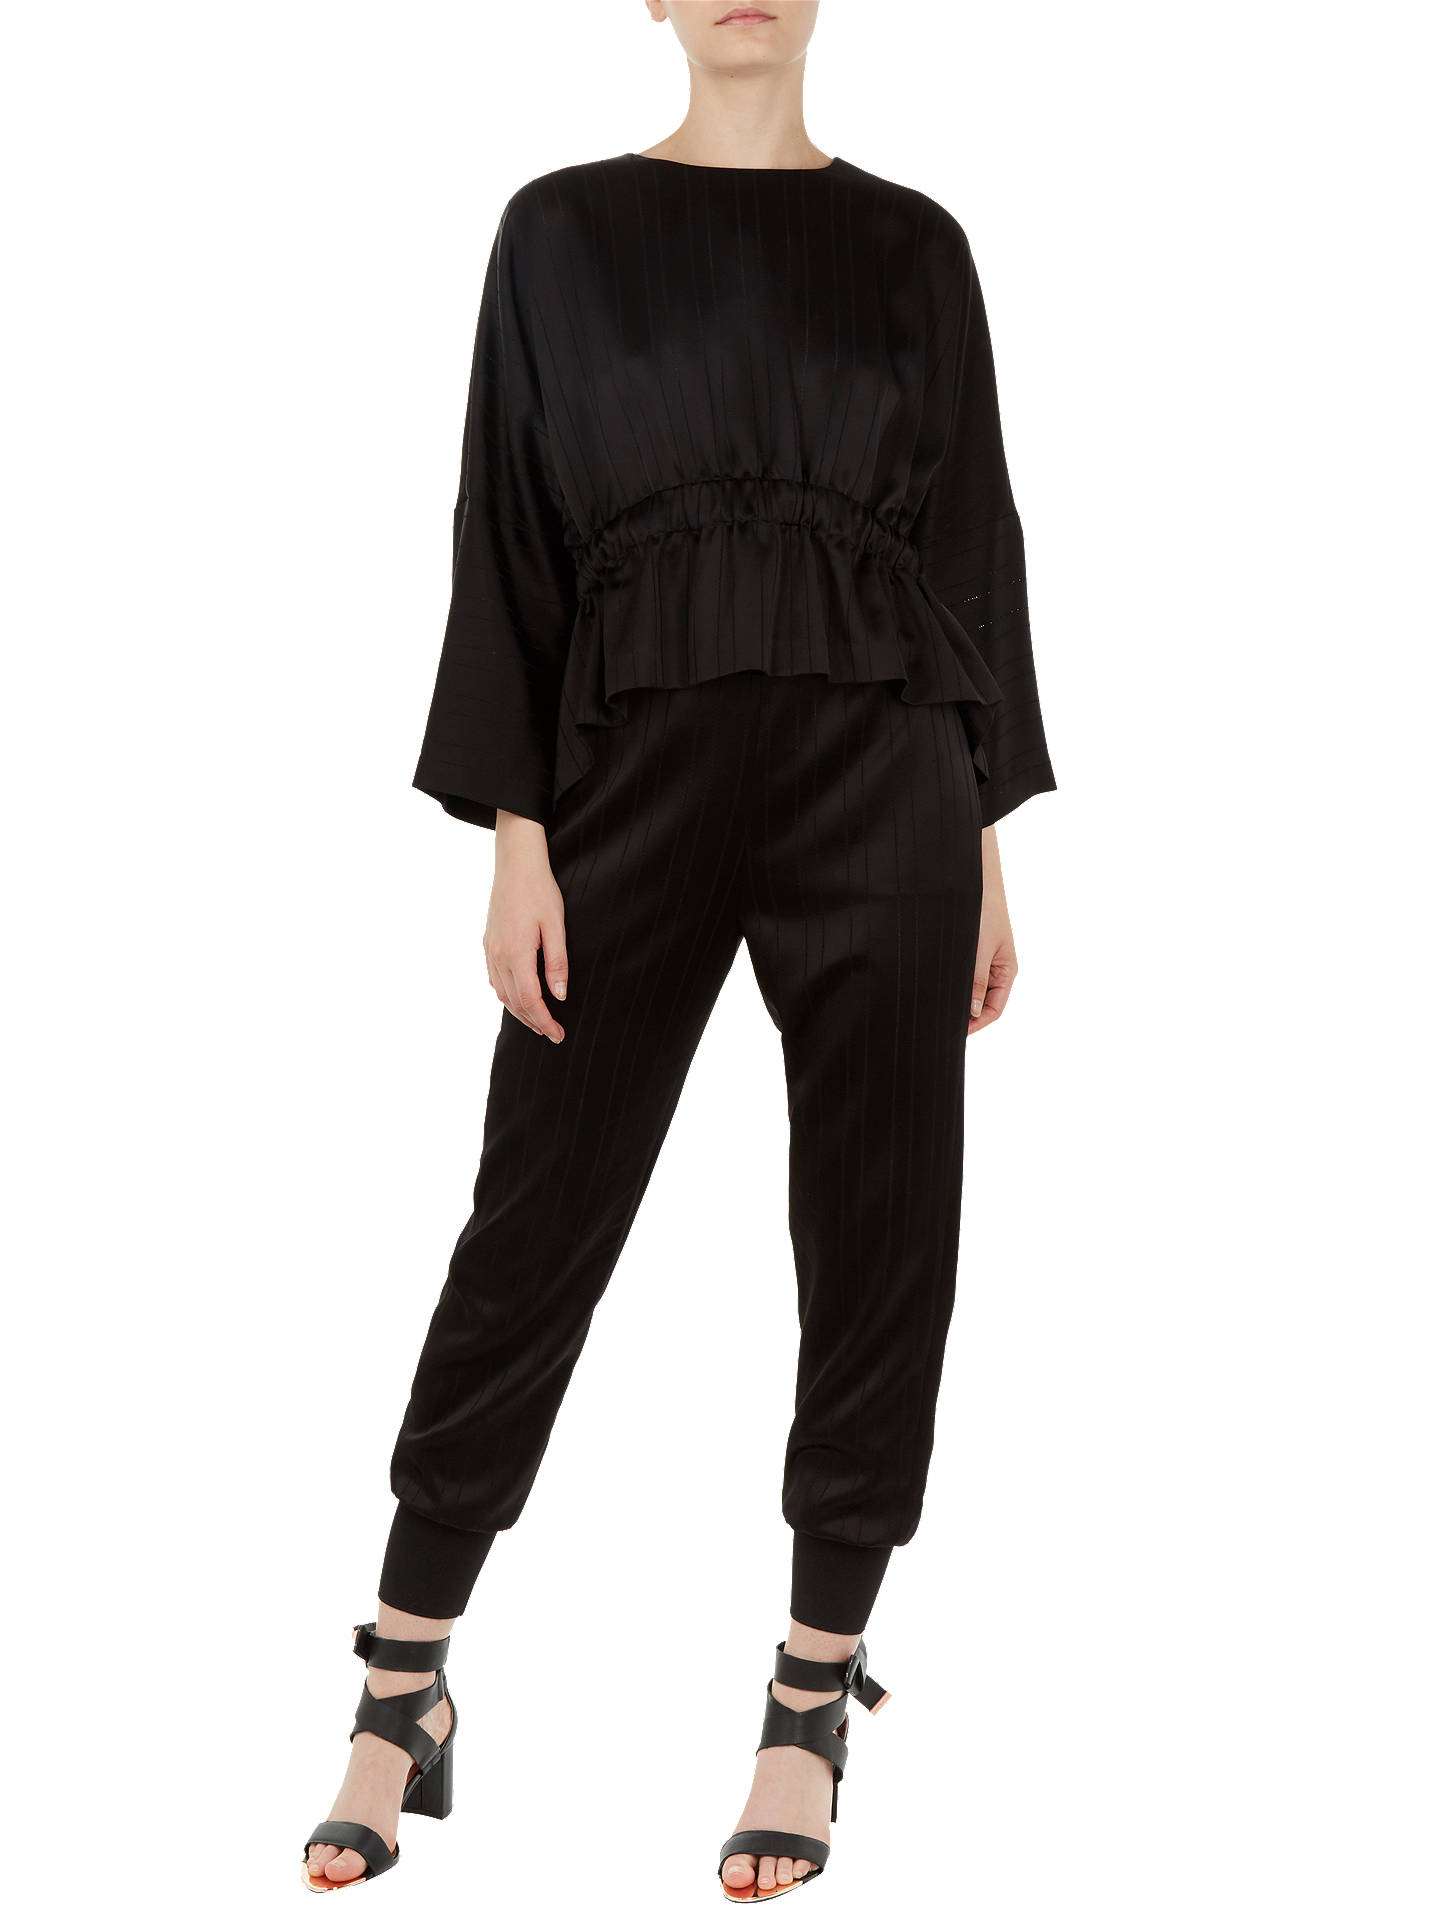 BuyTed Baker Kimilla Ruched Top, Black, XL Online at johnlewis.com